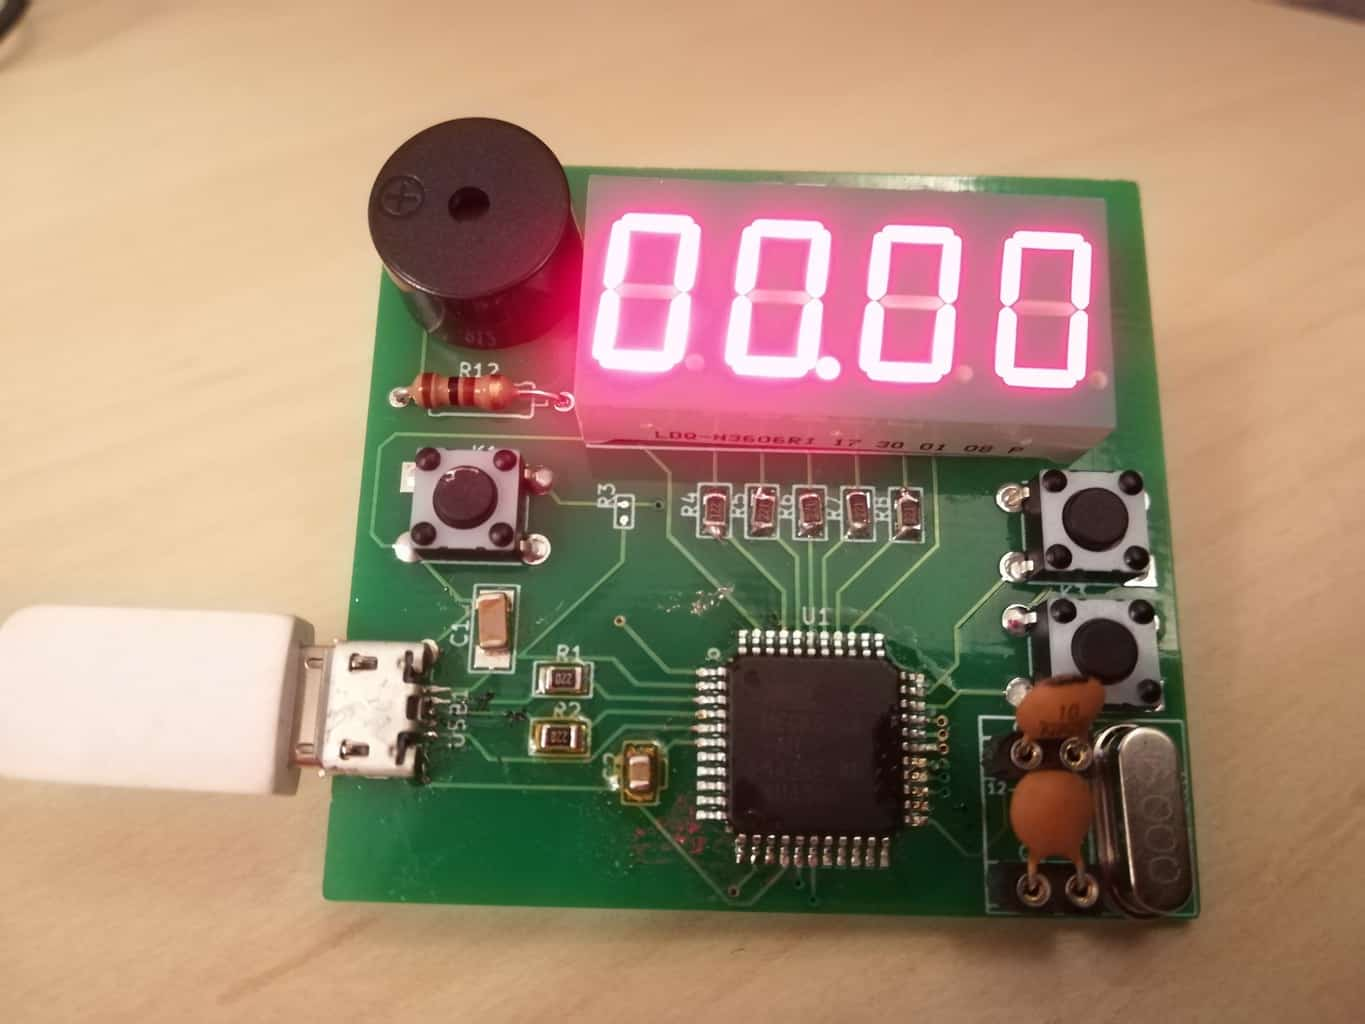 Alarm Clock Prototype Build Electronic Circuits Thermometer Circuit With Explanation Https Com Wp Content Uploads 2018 01 Tutorial Device1